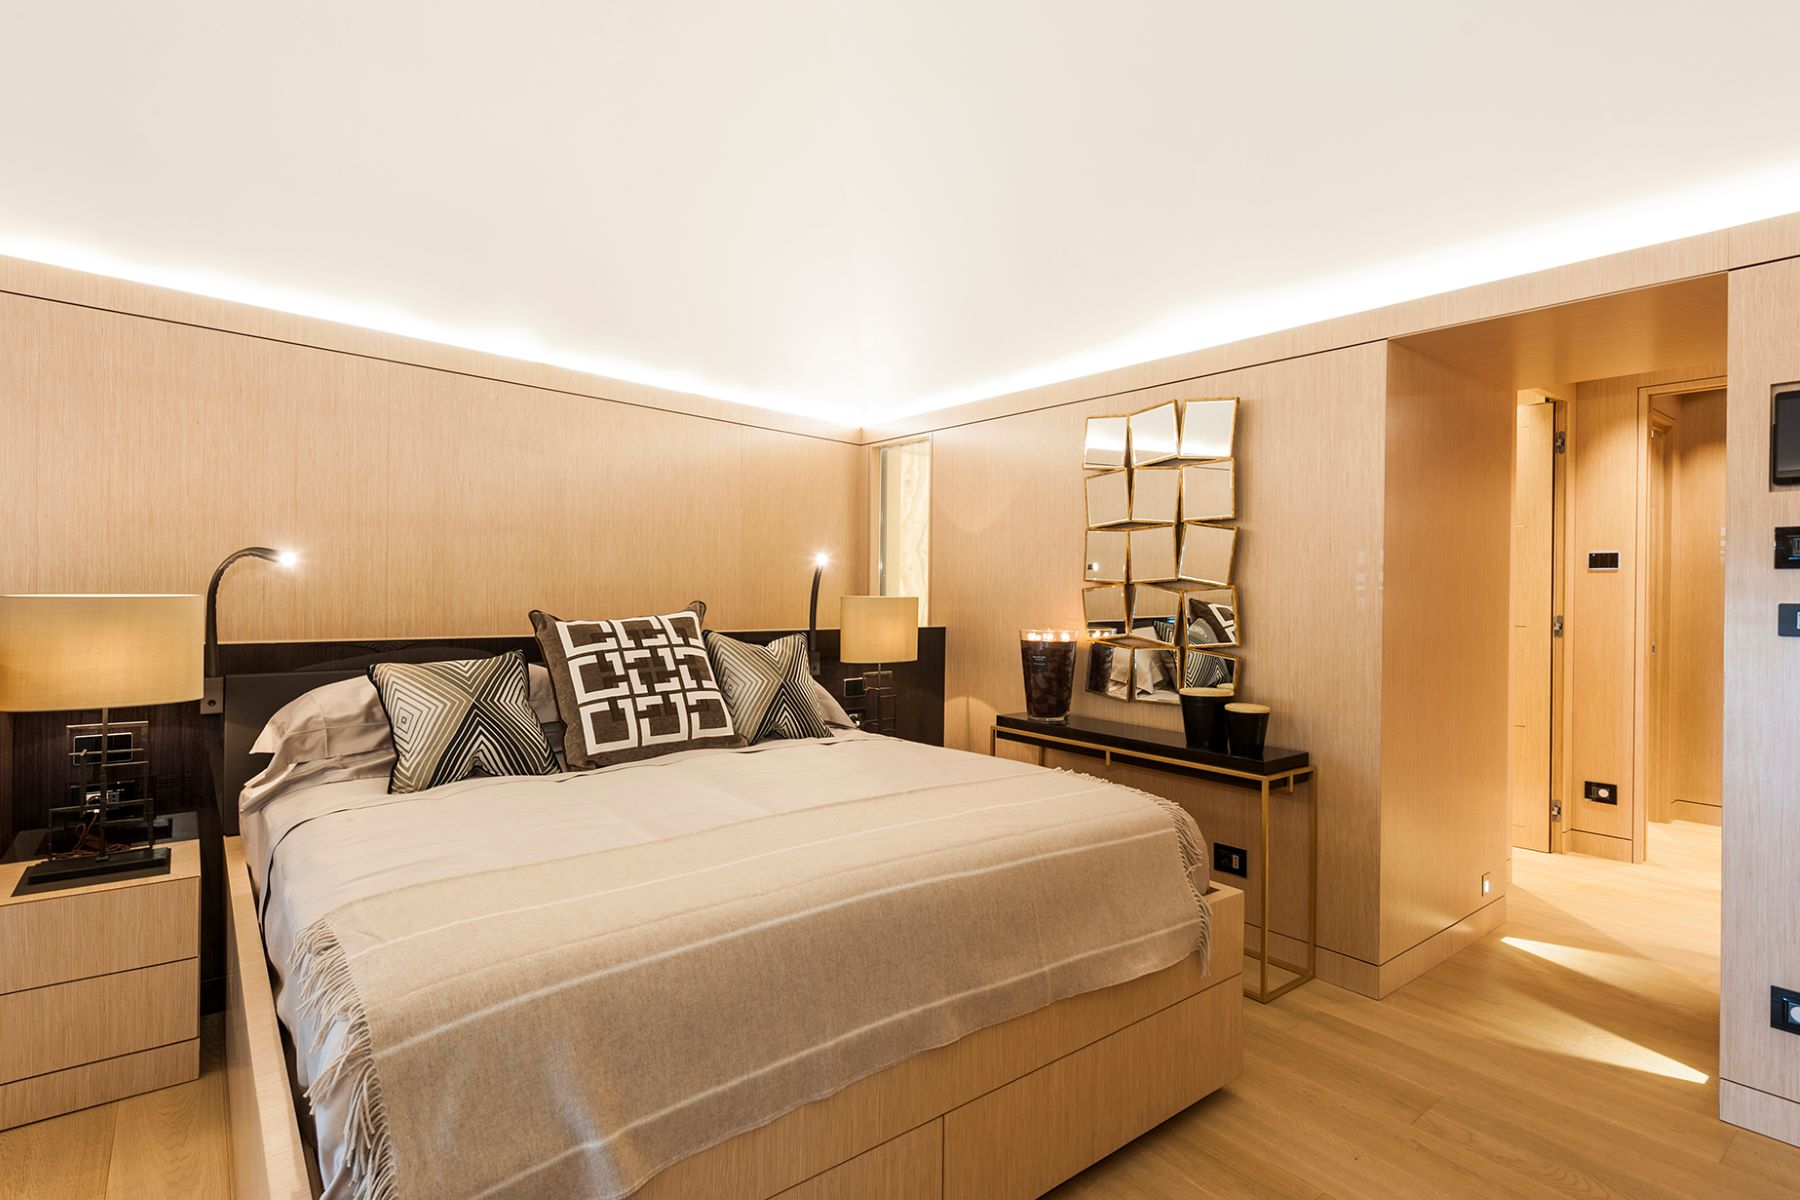 Additional photo for property listing at Luxurious loft in Piazza Borghese  Rome, Roma 00186 Italia